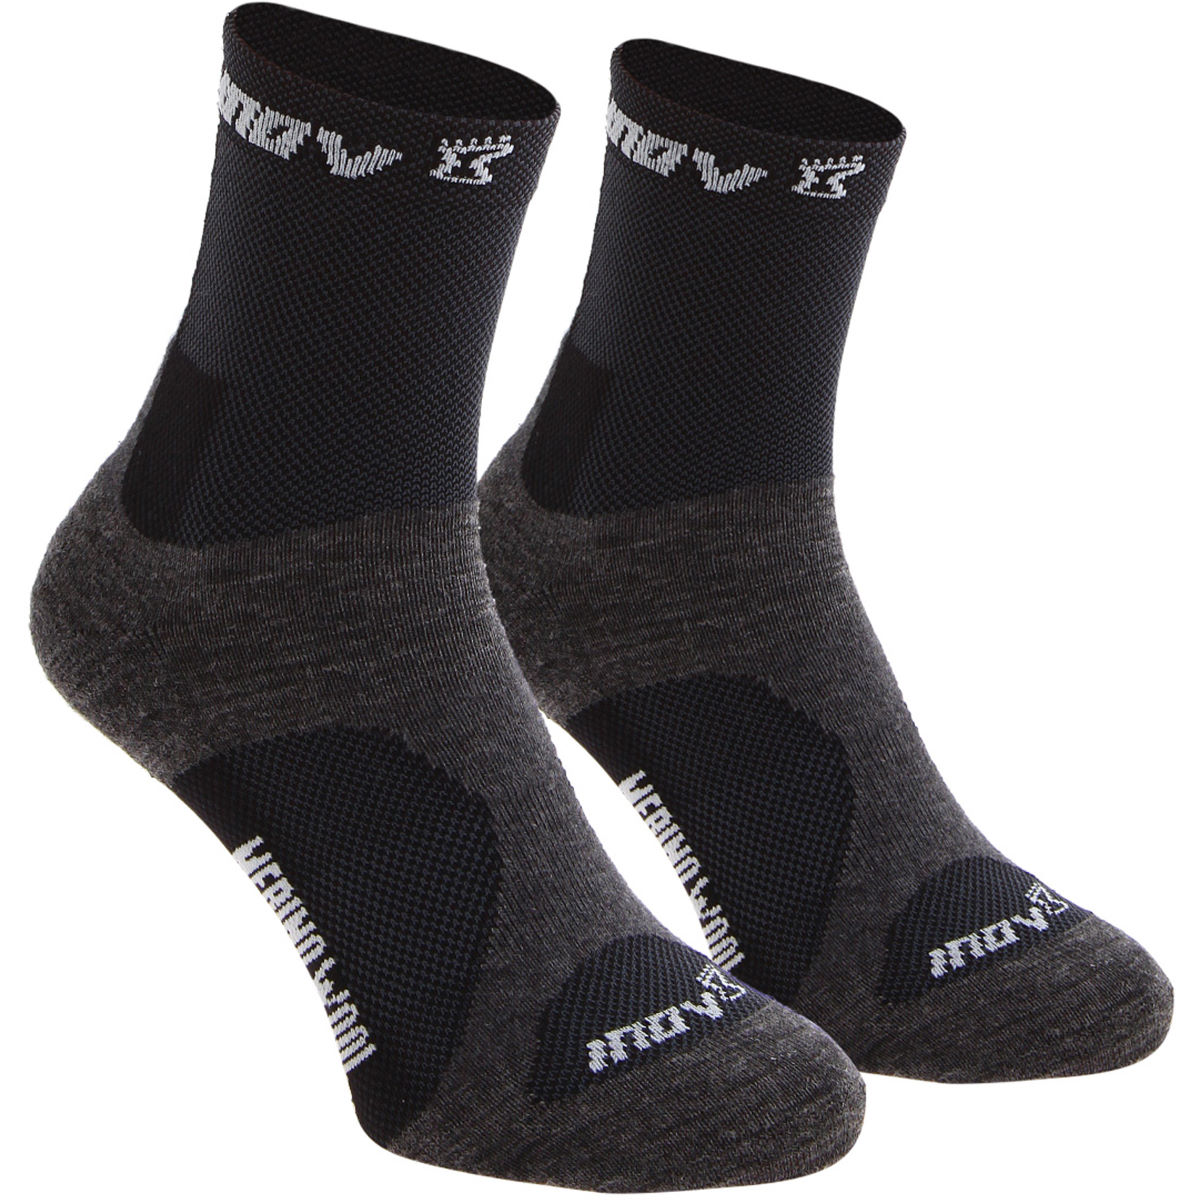 Inov-8 Mudsoc High (Twin Pack)